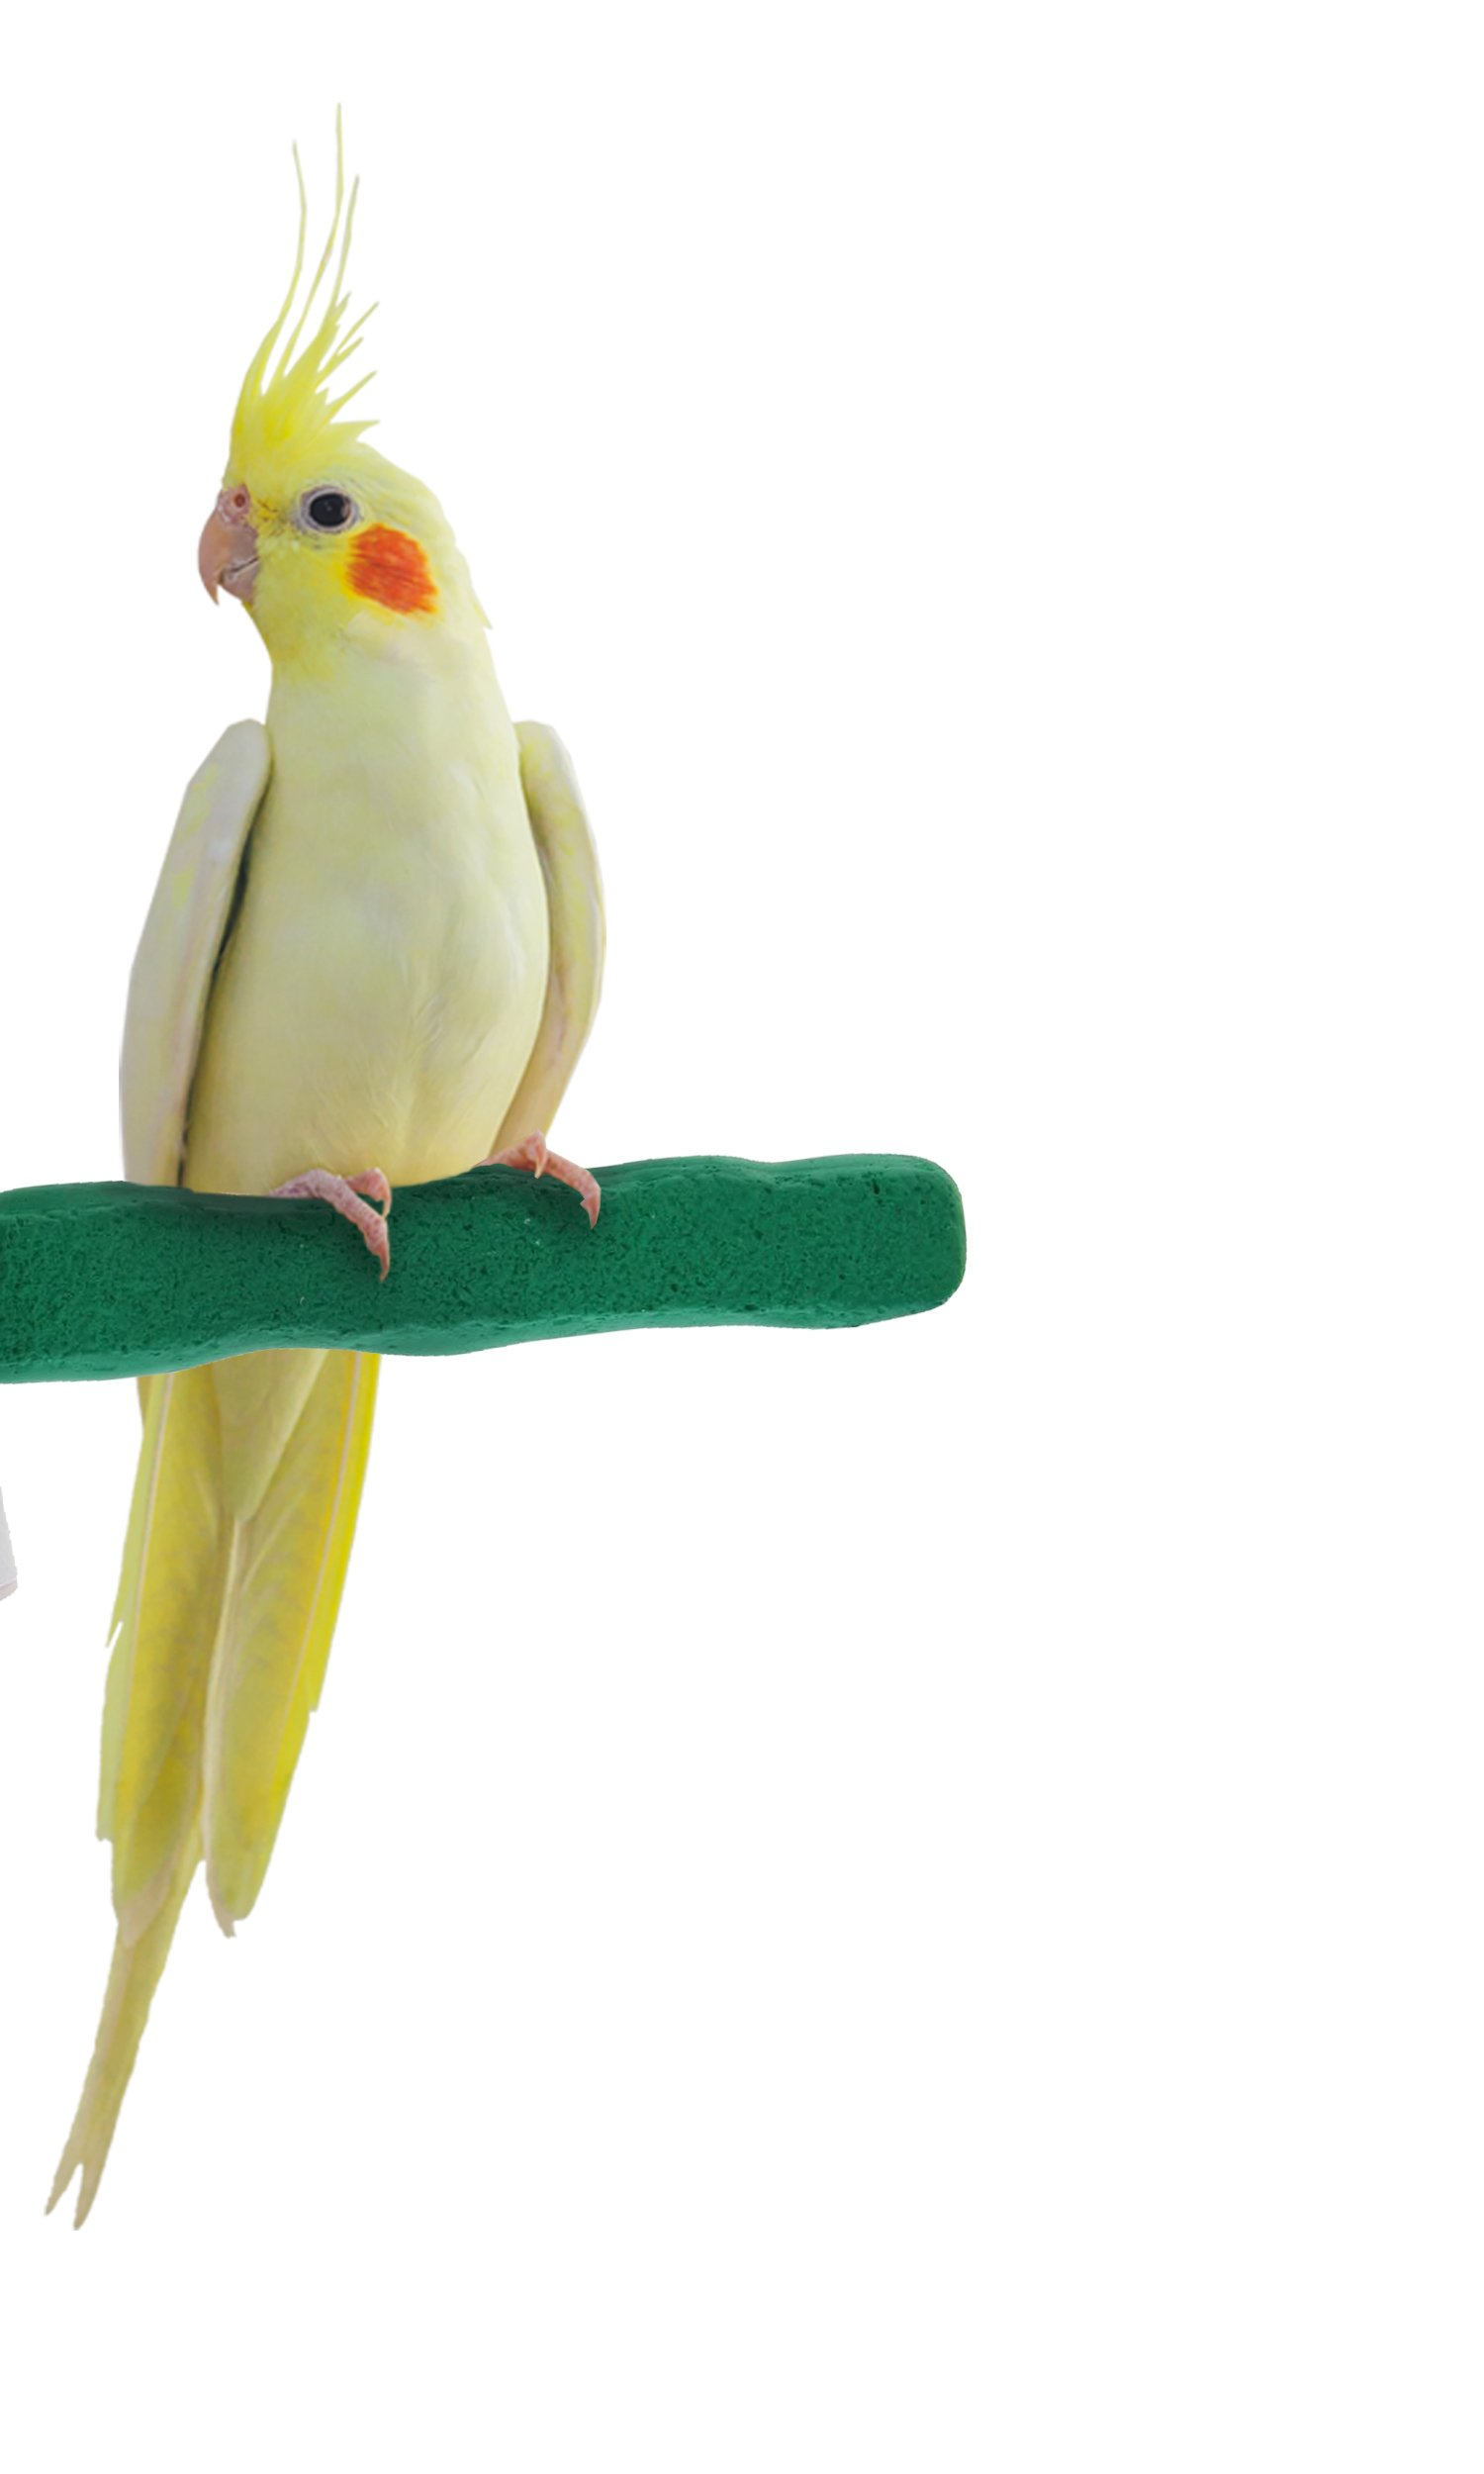 Sweet Feet and Beak Comfort Grip Safety Perch for Birds by Patented Perch Keeps Nails and Beak in Top Condition - Safe and Non-Toxic, For Cages – Small/Green